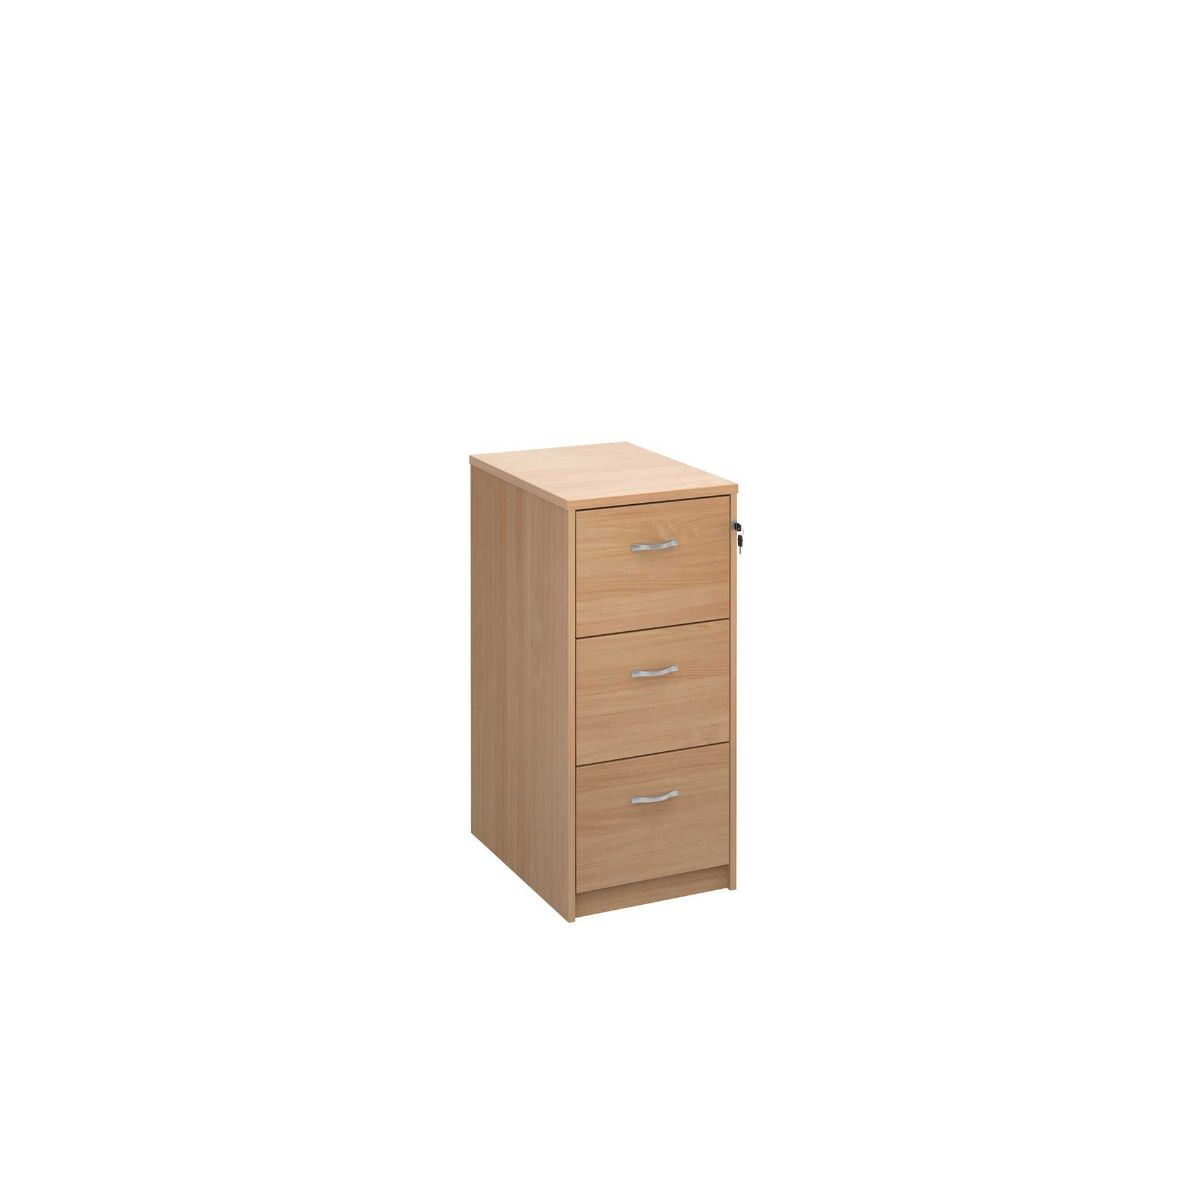 Three Drawer Filing Cabinet, Beech